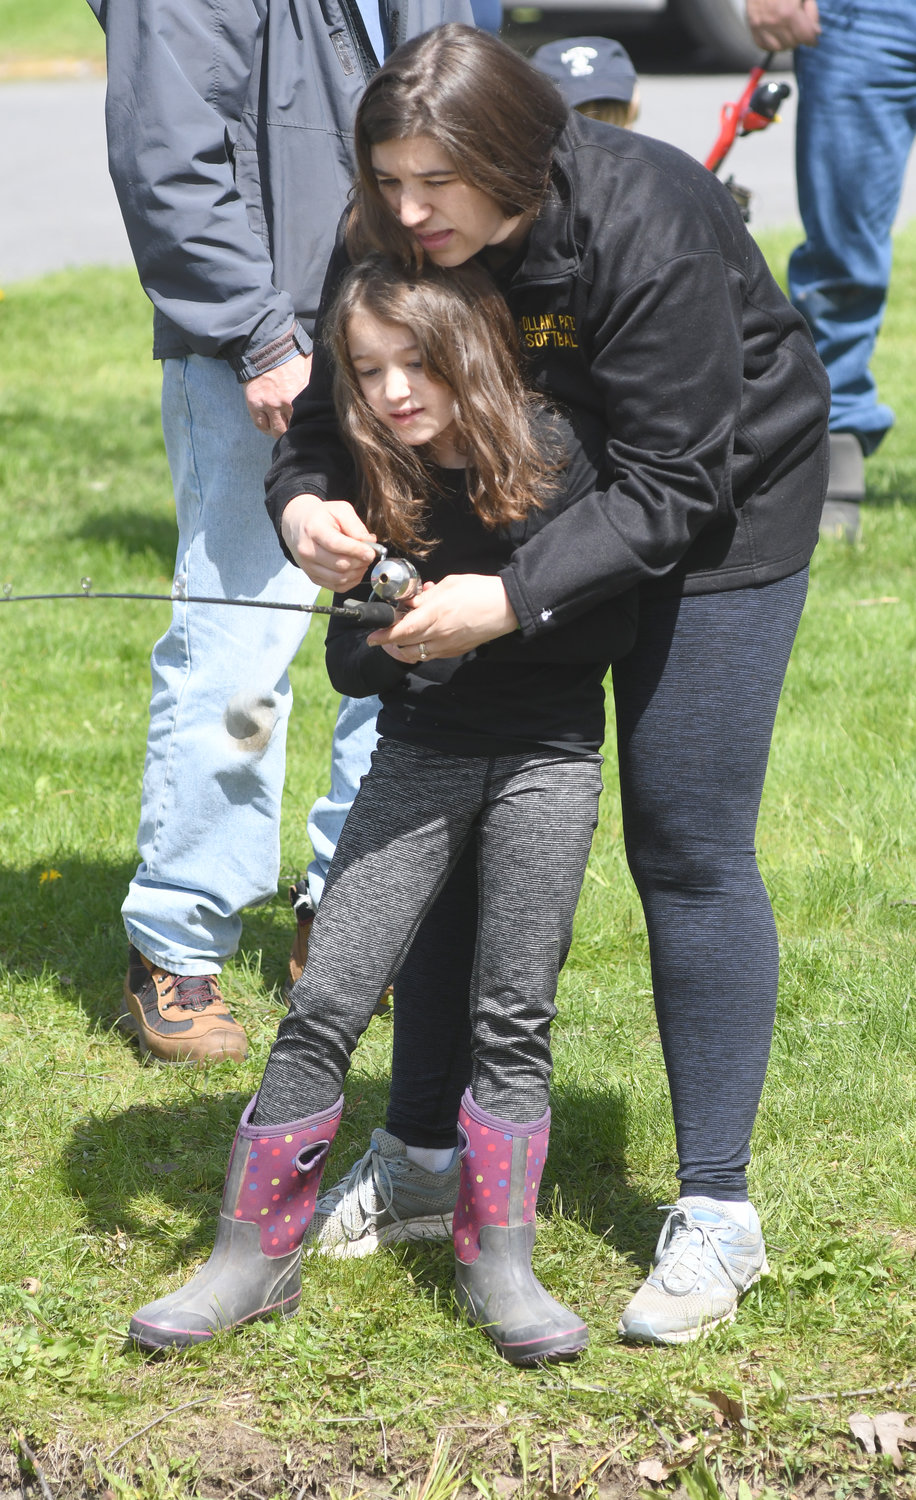 TEAM EFFORT — Heather Roberts and her daughter Ellie reel in a whooper of a fish during the Rick LeFevre Fishing Derby. Rick LeFevre, a longtime city Recreation Department worker, was Heather's uncle.